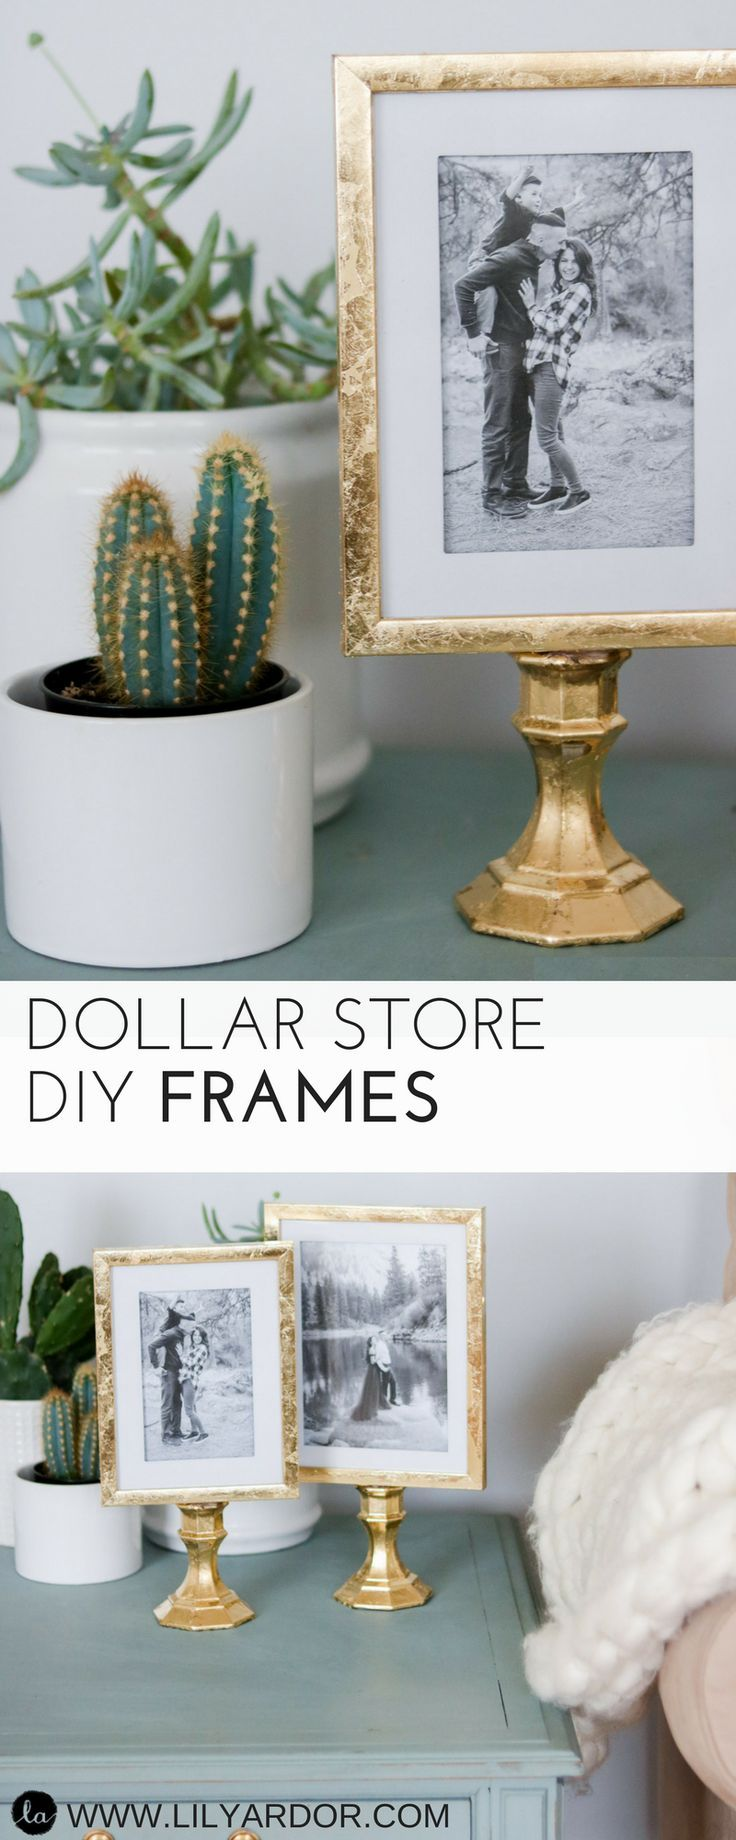 5 Dollar Store Hacks for Home Decor and Kitchen Organization | Pinterest